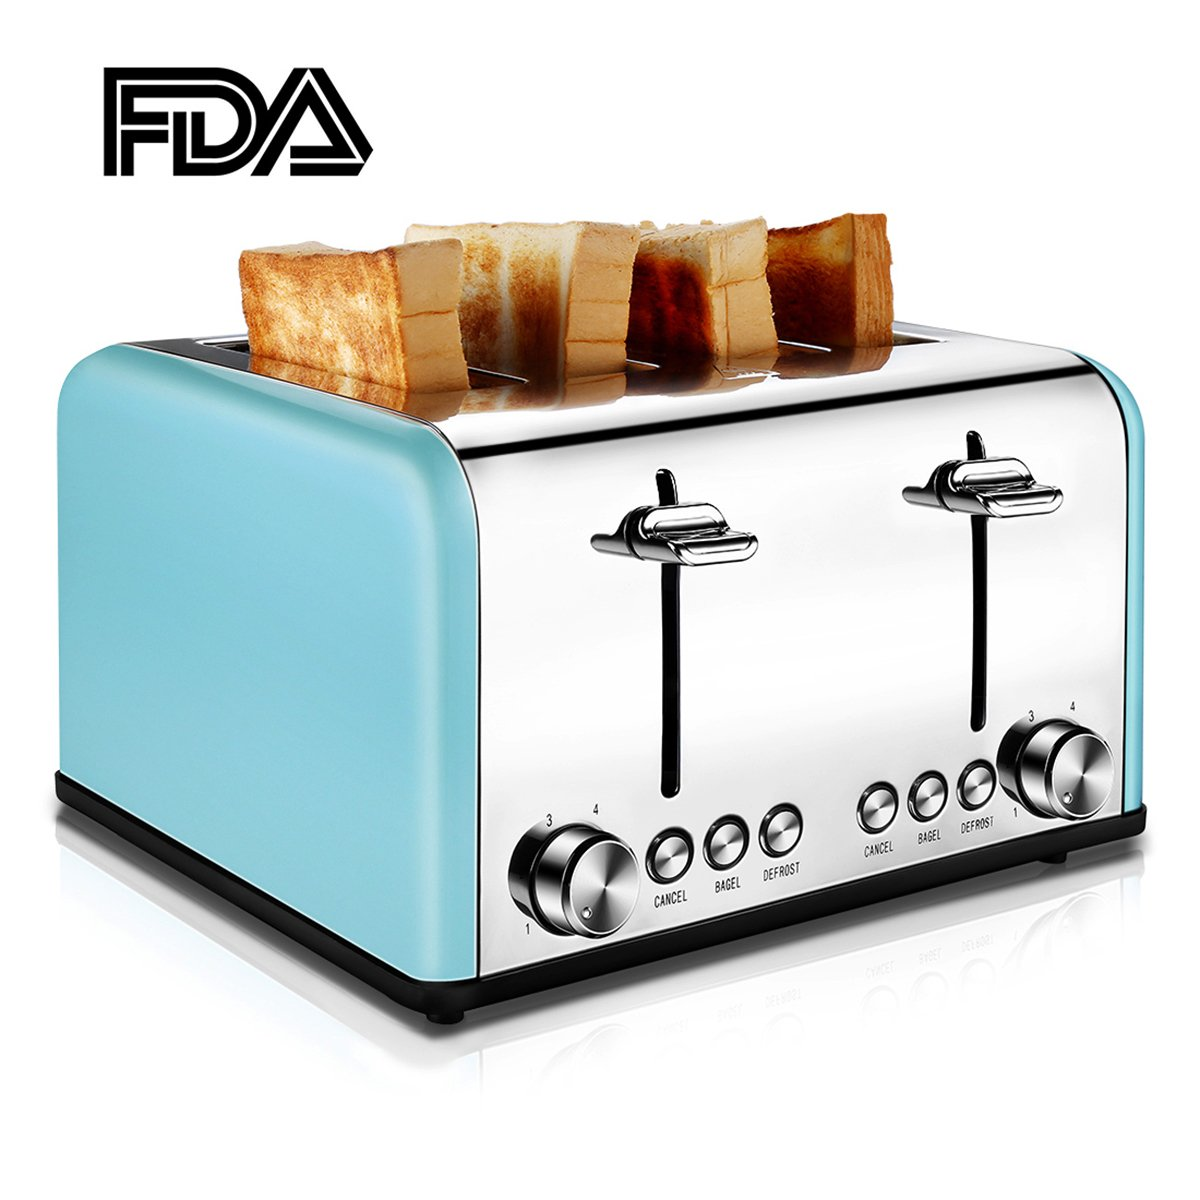 4 Slice Toaster, TOBOX Extra Wide Slots Toasters Stainless Steel with 6 Bread Browning Settings, Bagel/DEFROST/CANCEL Function, 1650W, Blue